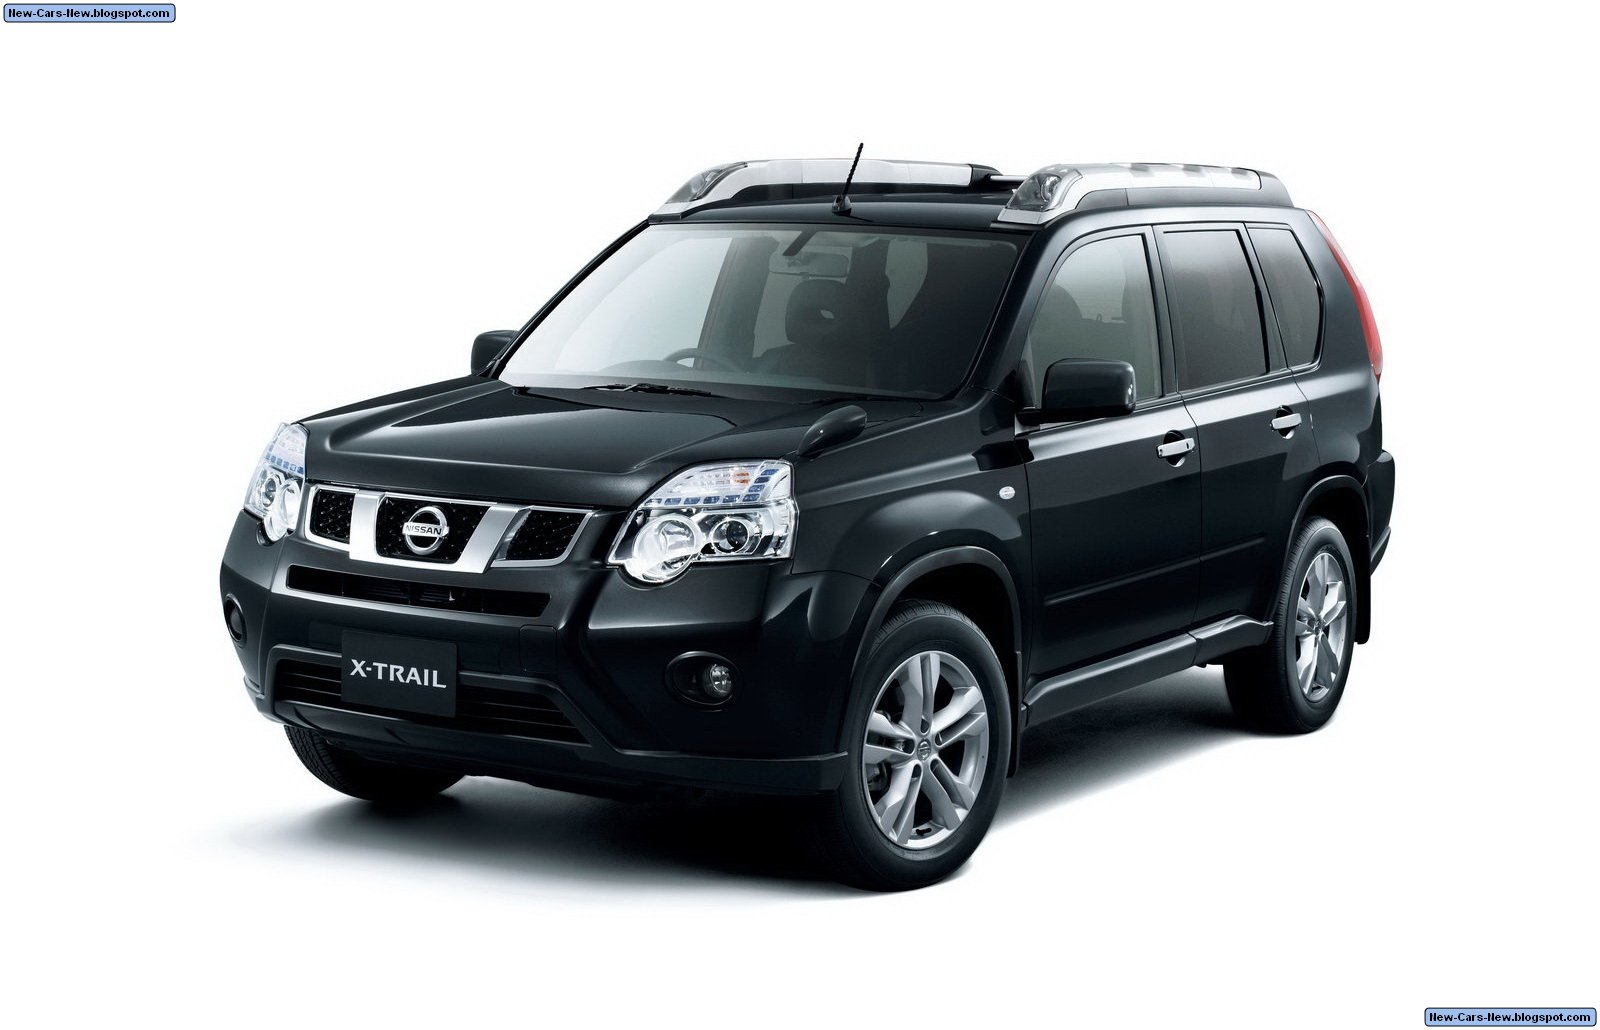 Best Car Blog: Nissan X-Trail (2011